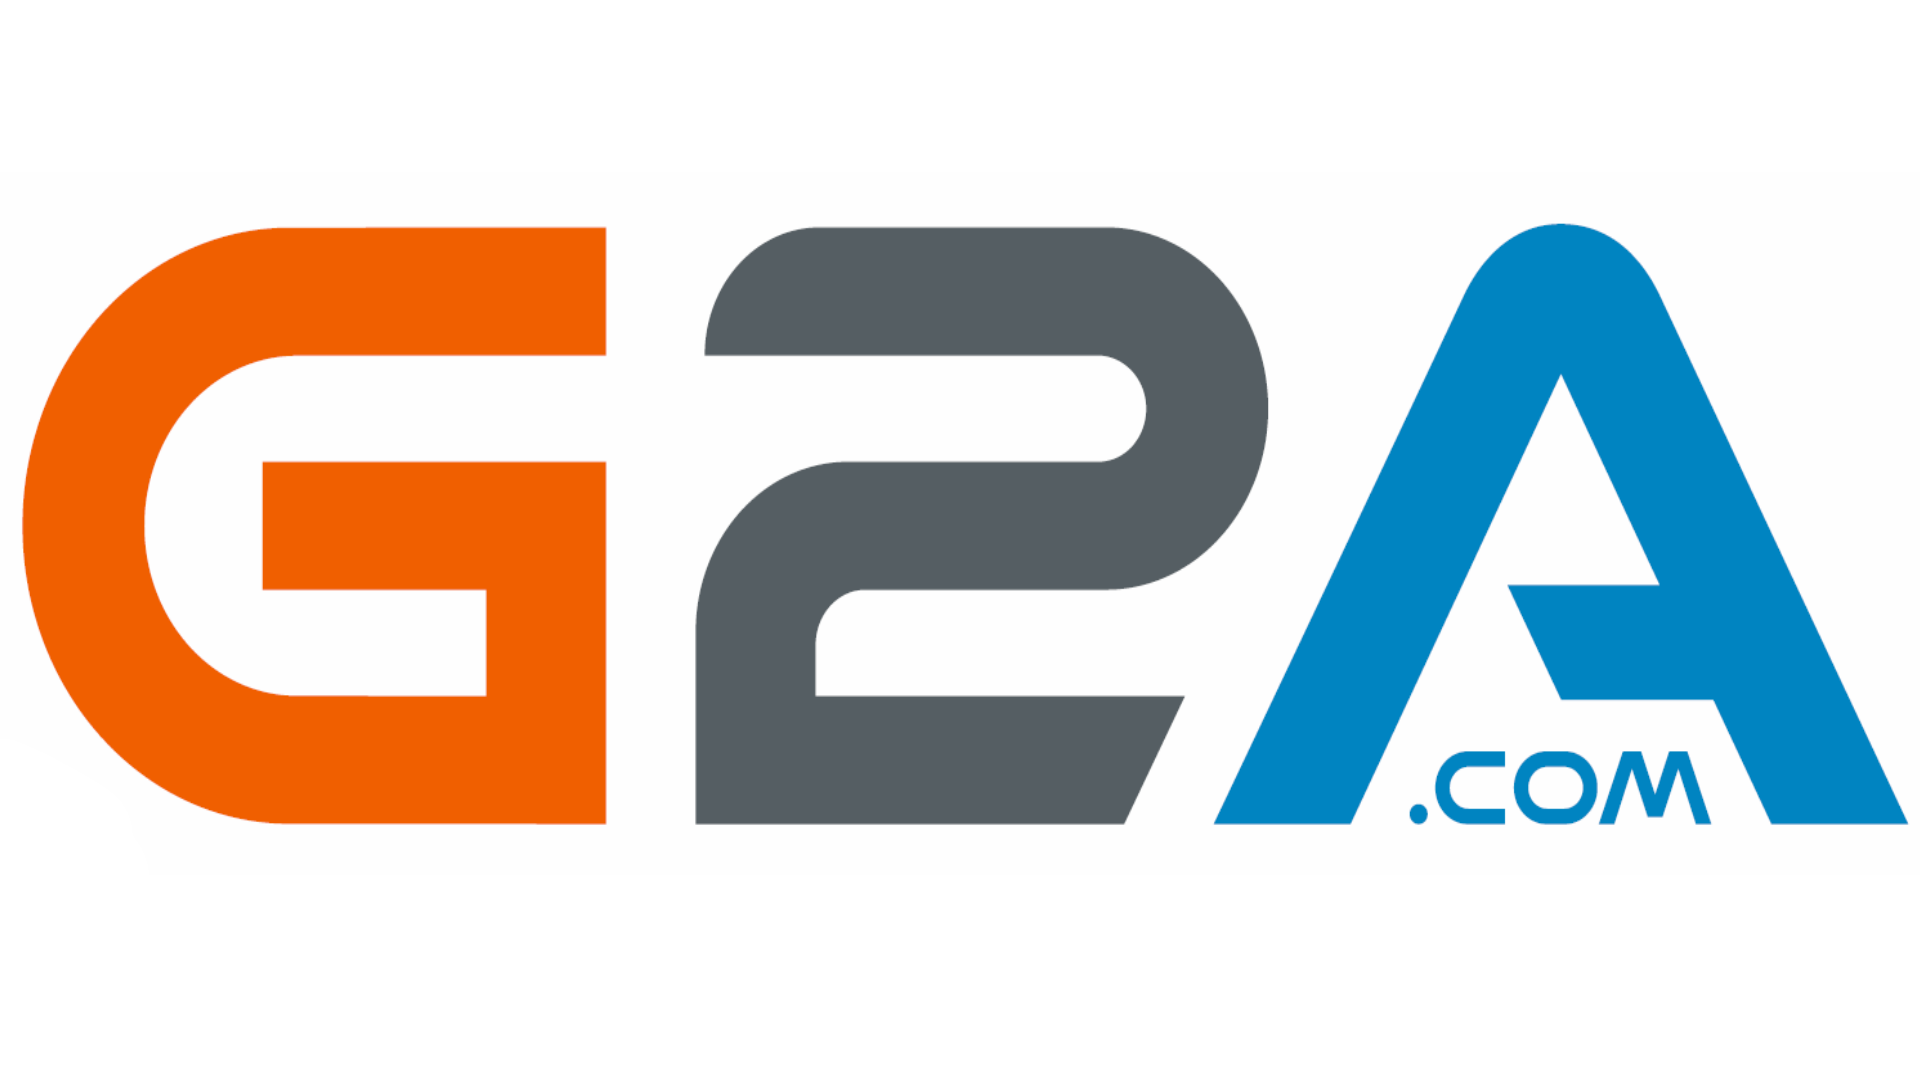 G2A's payment service charges you money for not logging in